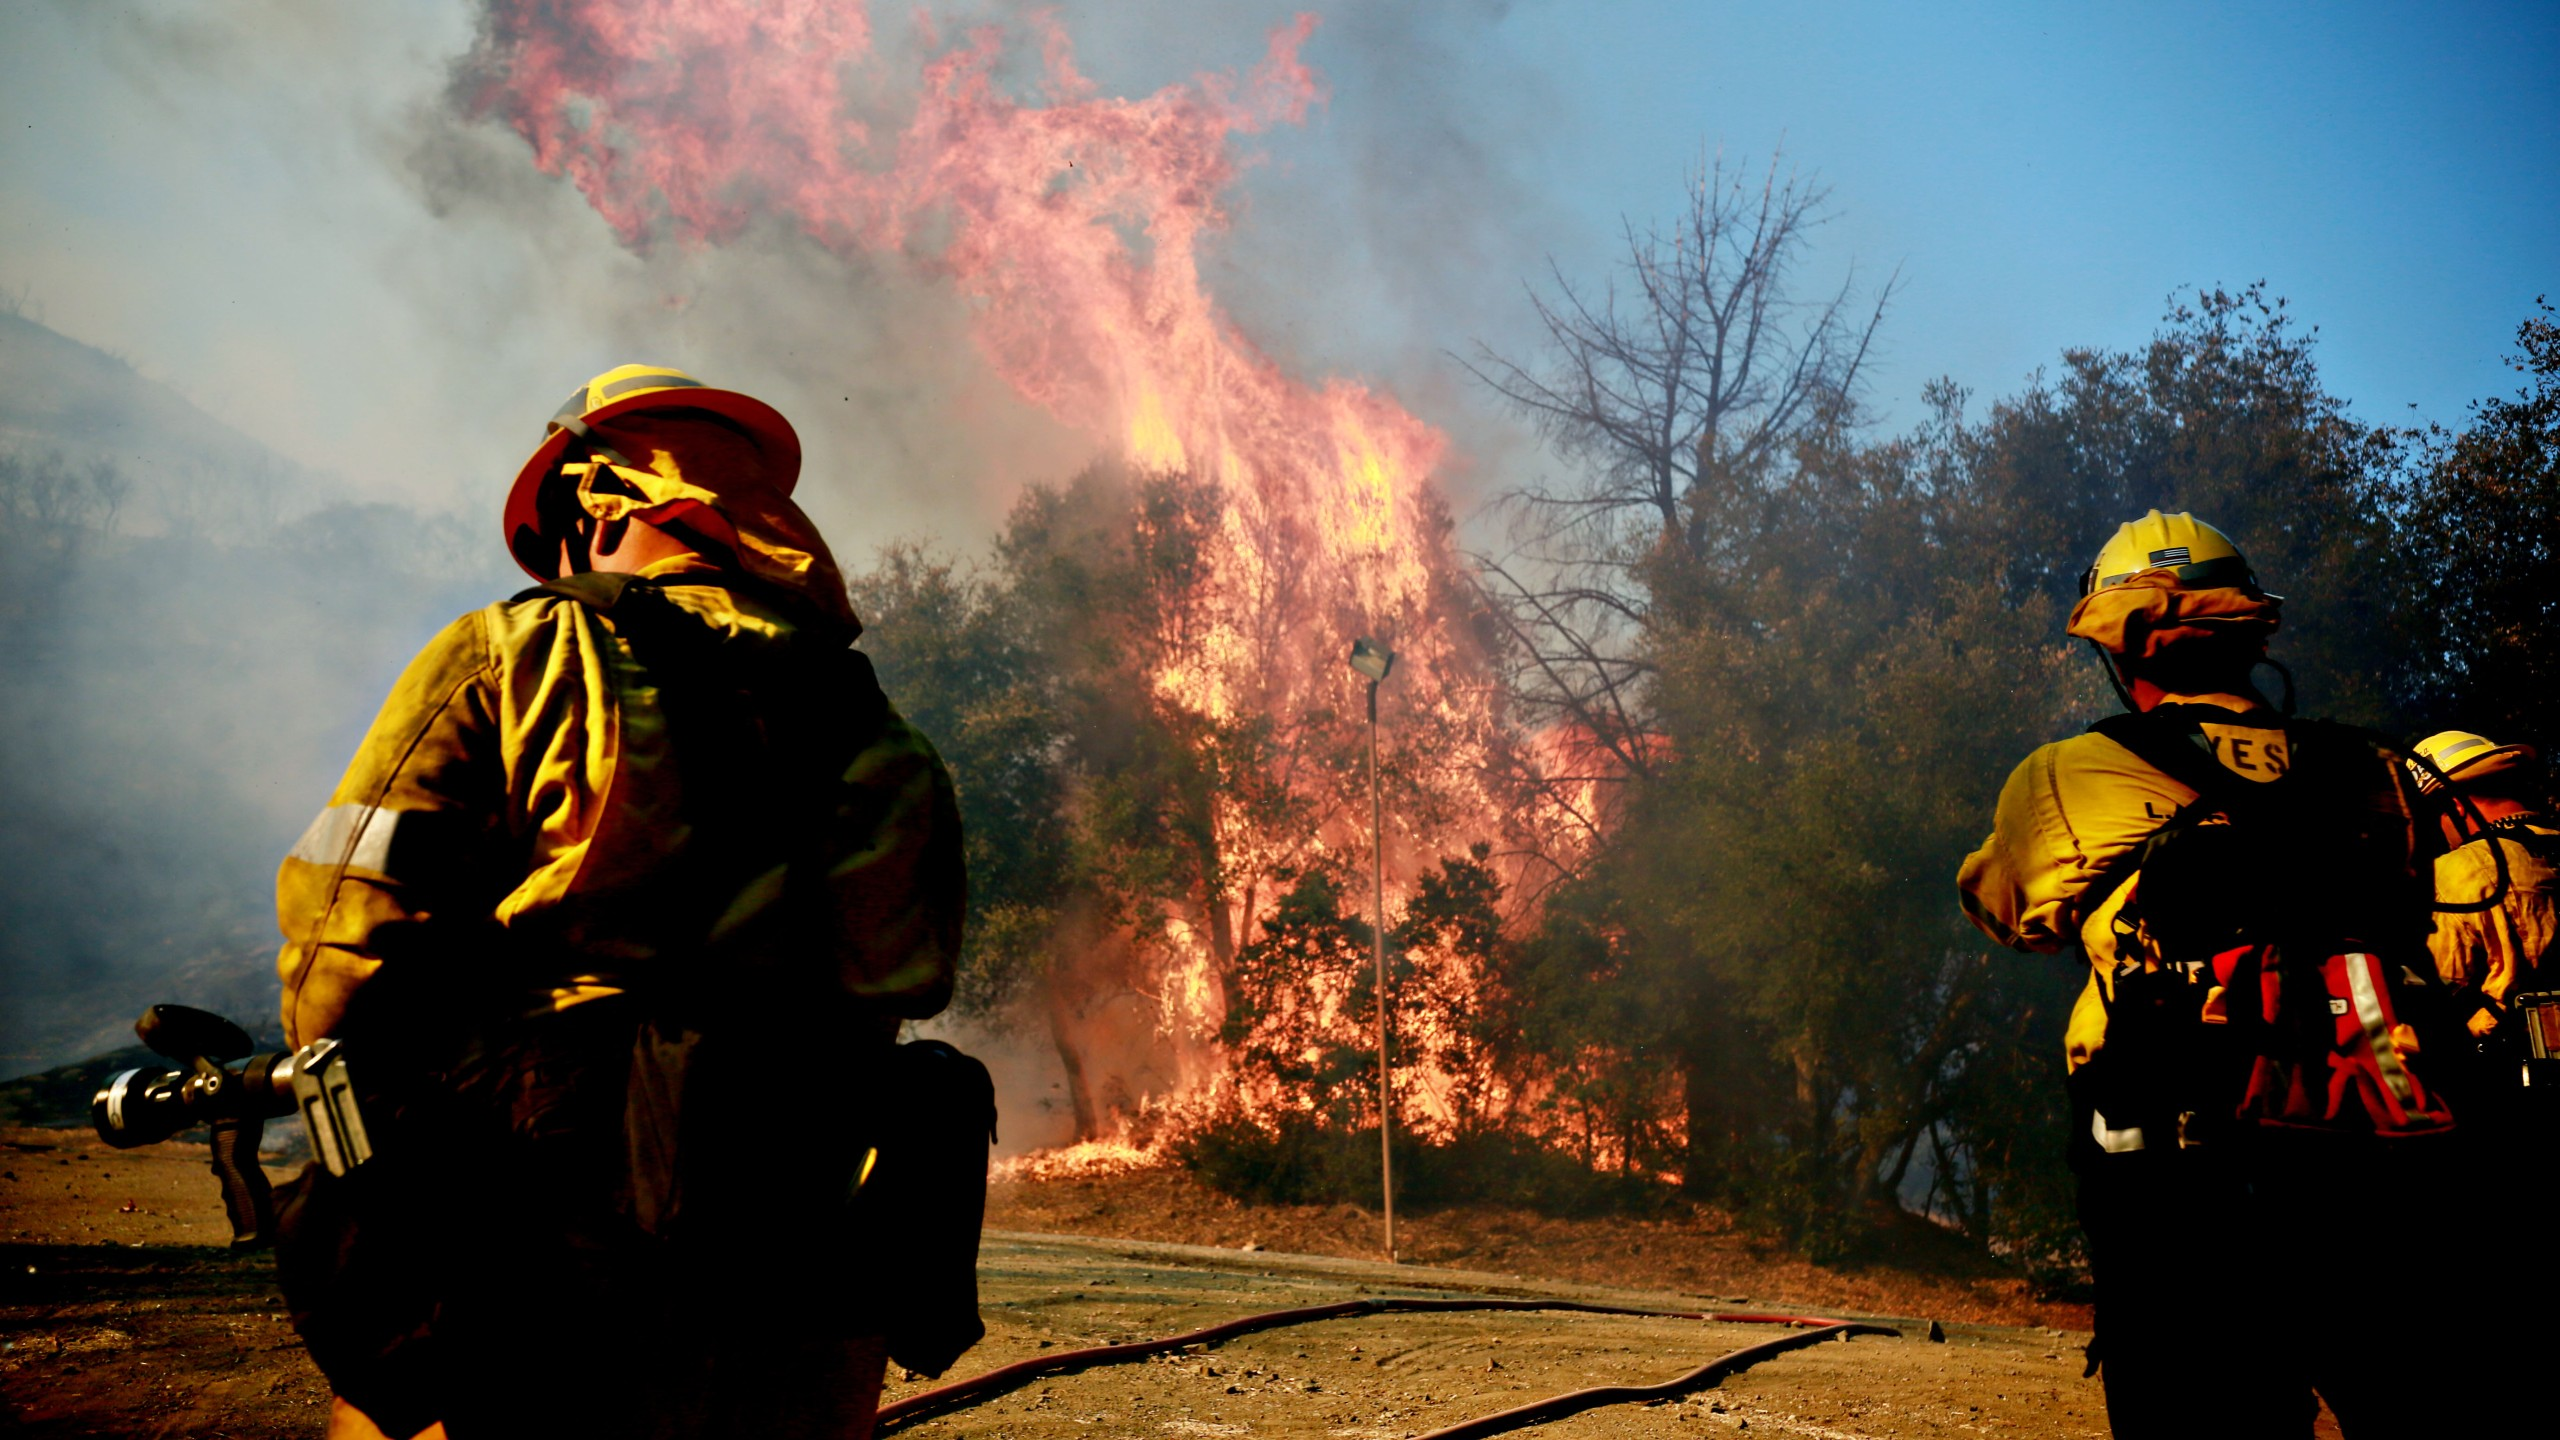 Firefighters battle a blaze at the Salvation Army Camp on Nov. 10, 2018, in Malibu. (Credit: Sandy Huffaker/Getty Images)